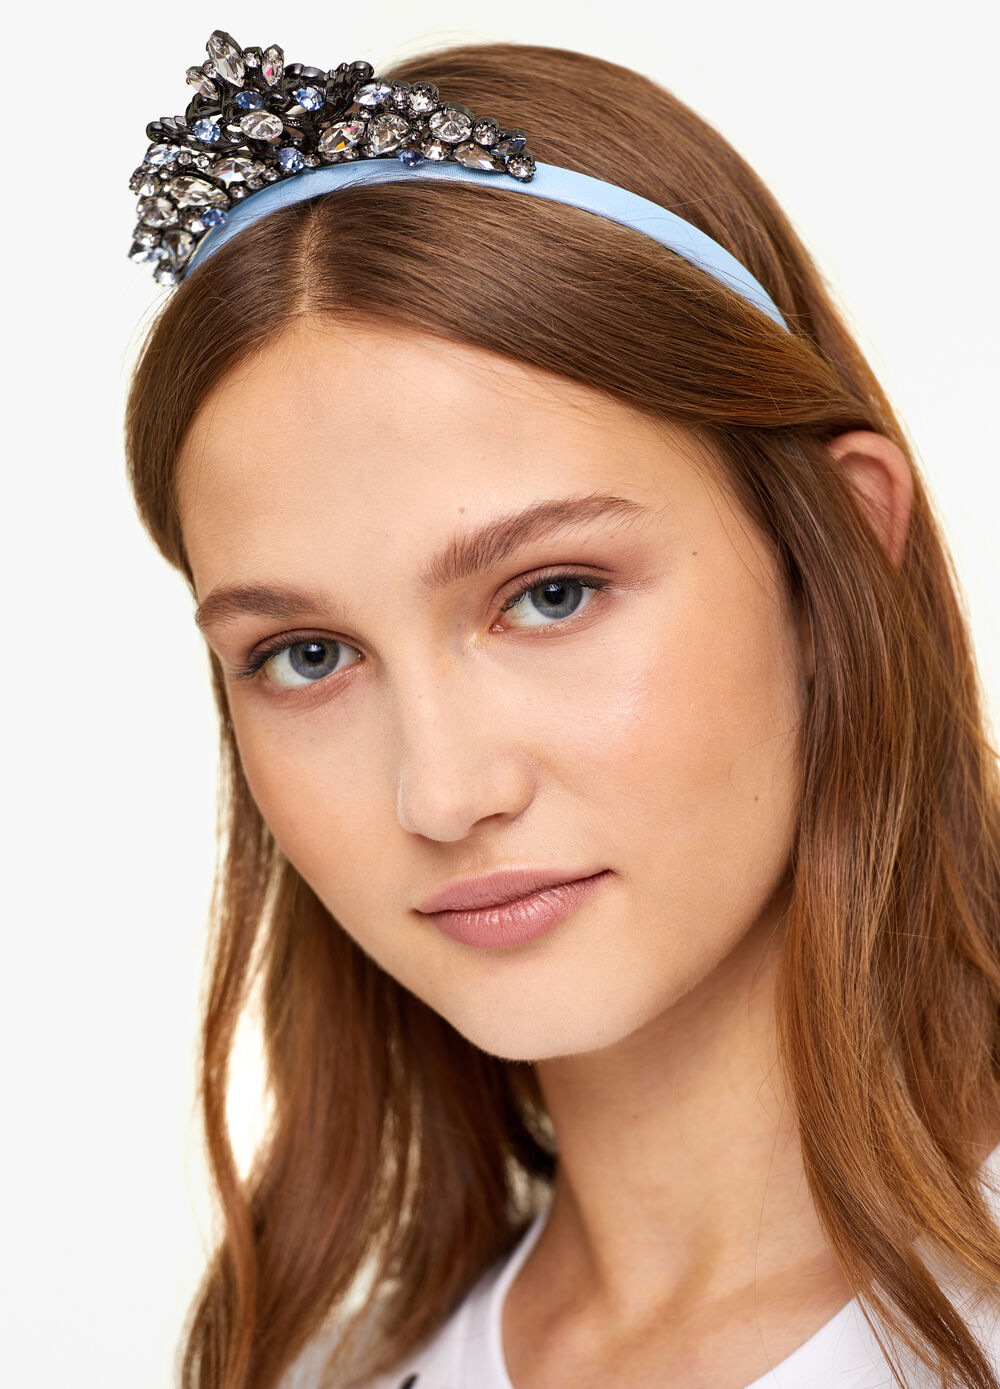 OVS Arts of Italy Cenerentola headband